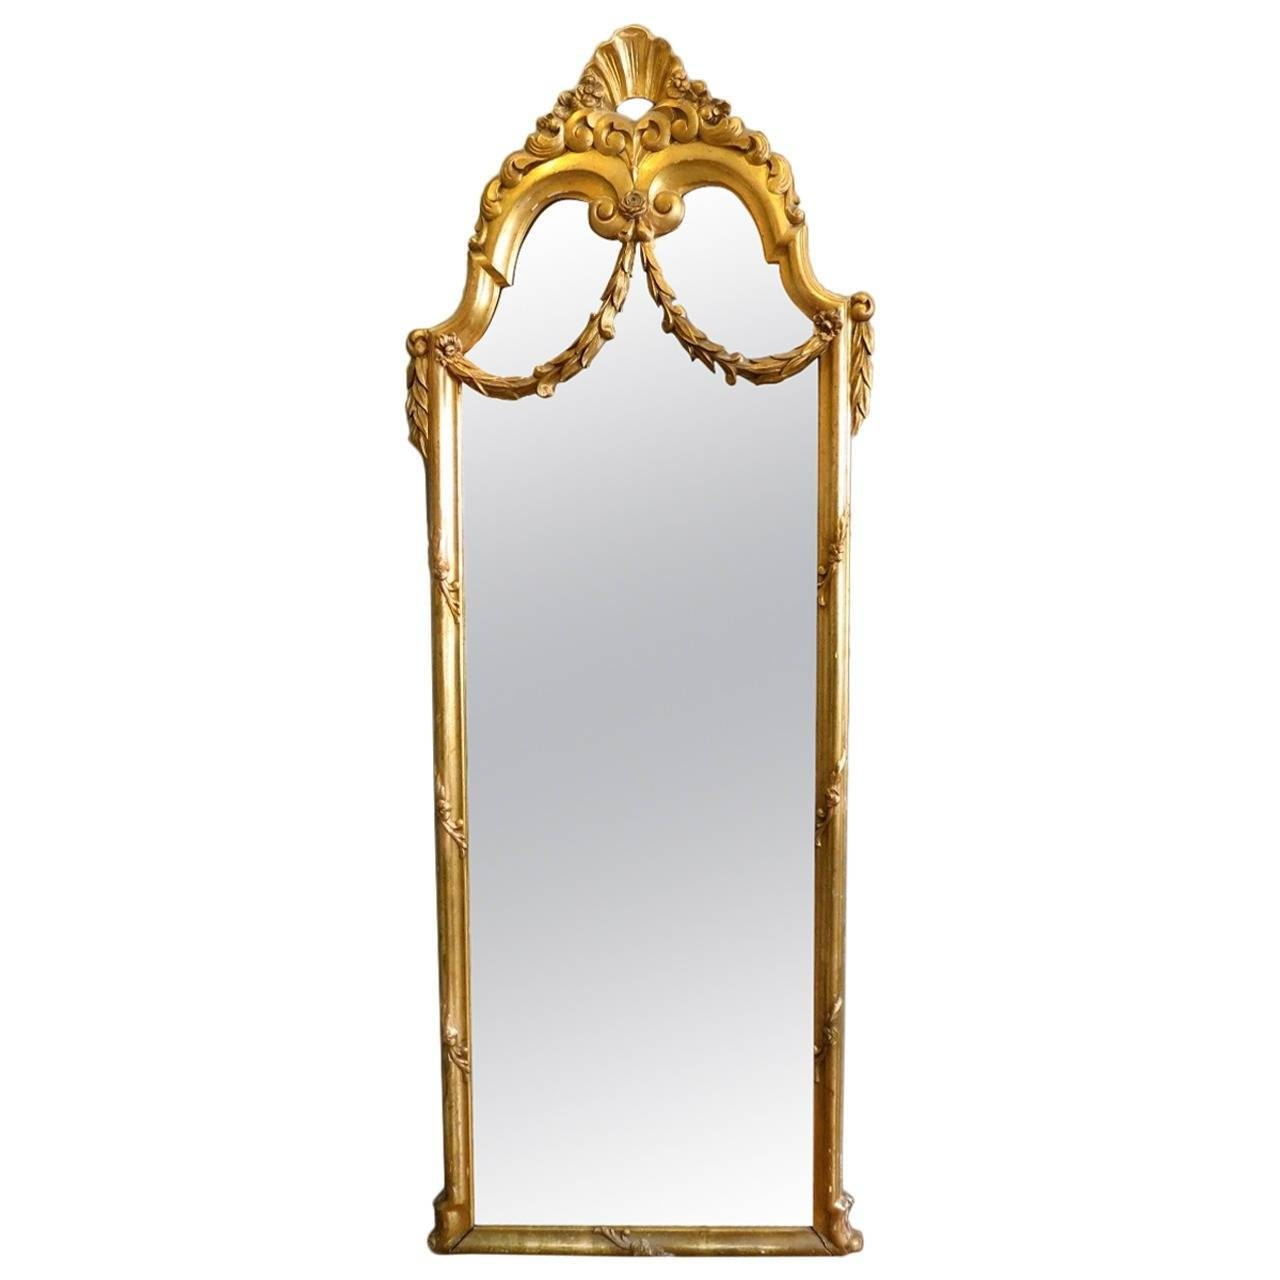 Antique French Gold Gilt Floor Standing Mirror At 1Stdibs throughout French Floor Standing Mirrors (Image 14 of 25)